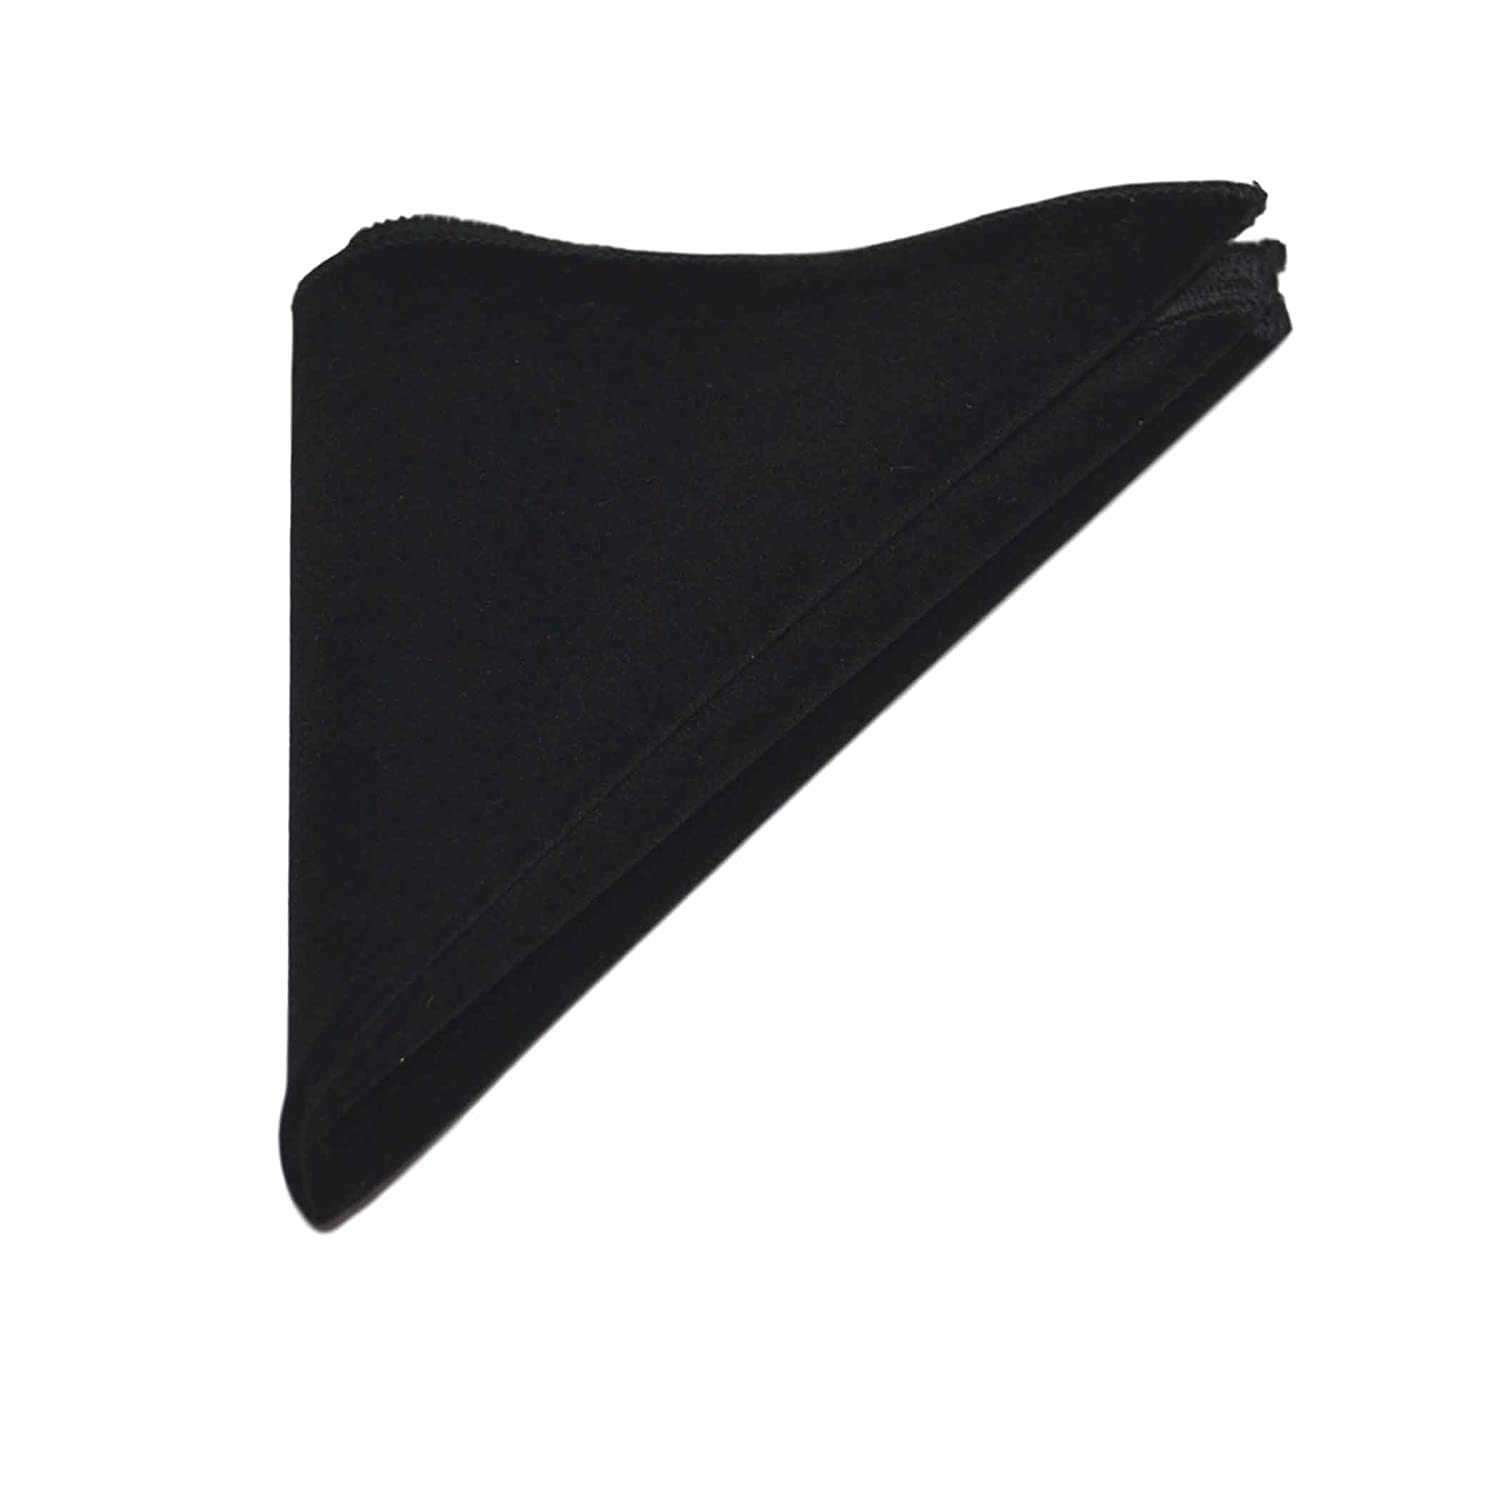 Luxury Black Velvet Pocket Square, Handkerchief King & Priory